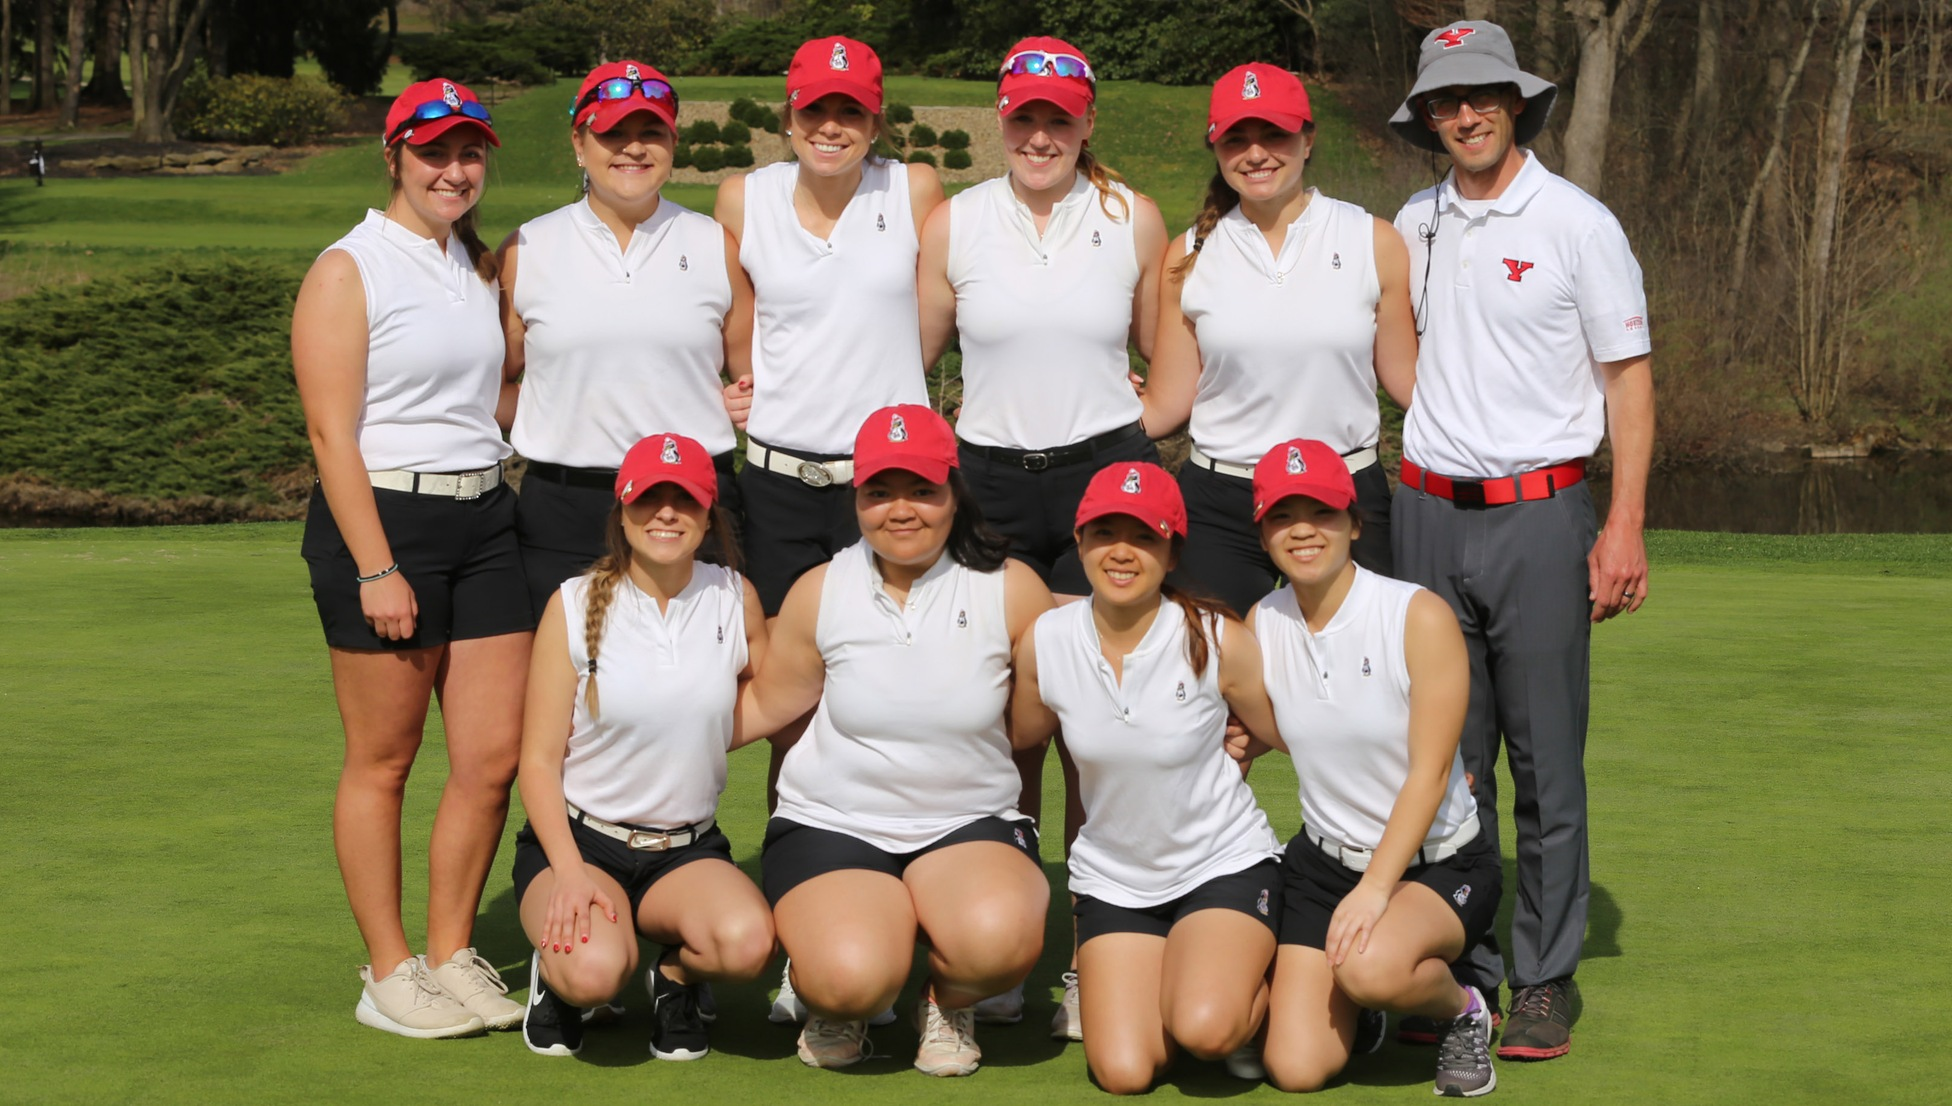 YSU Women's Golf earned its fourth win of the season at the YSU Spring Invitational.